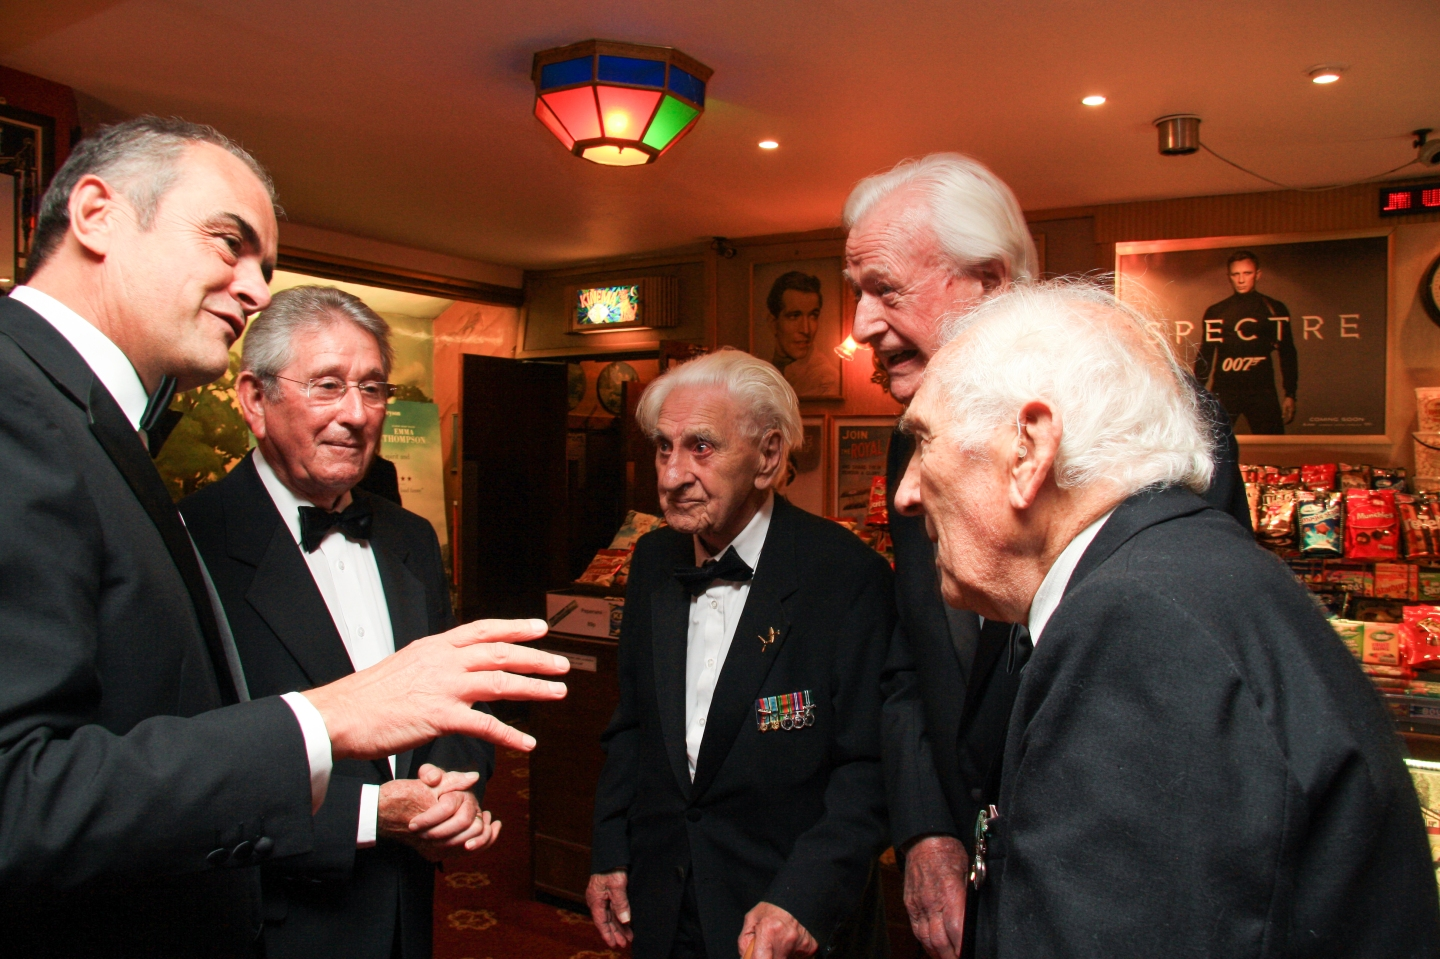 Melvyn Prior chats to Ken Wilkinson, Tom Neil and Tony Pickering